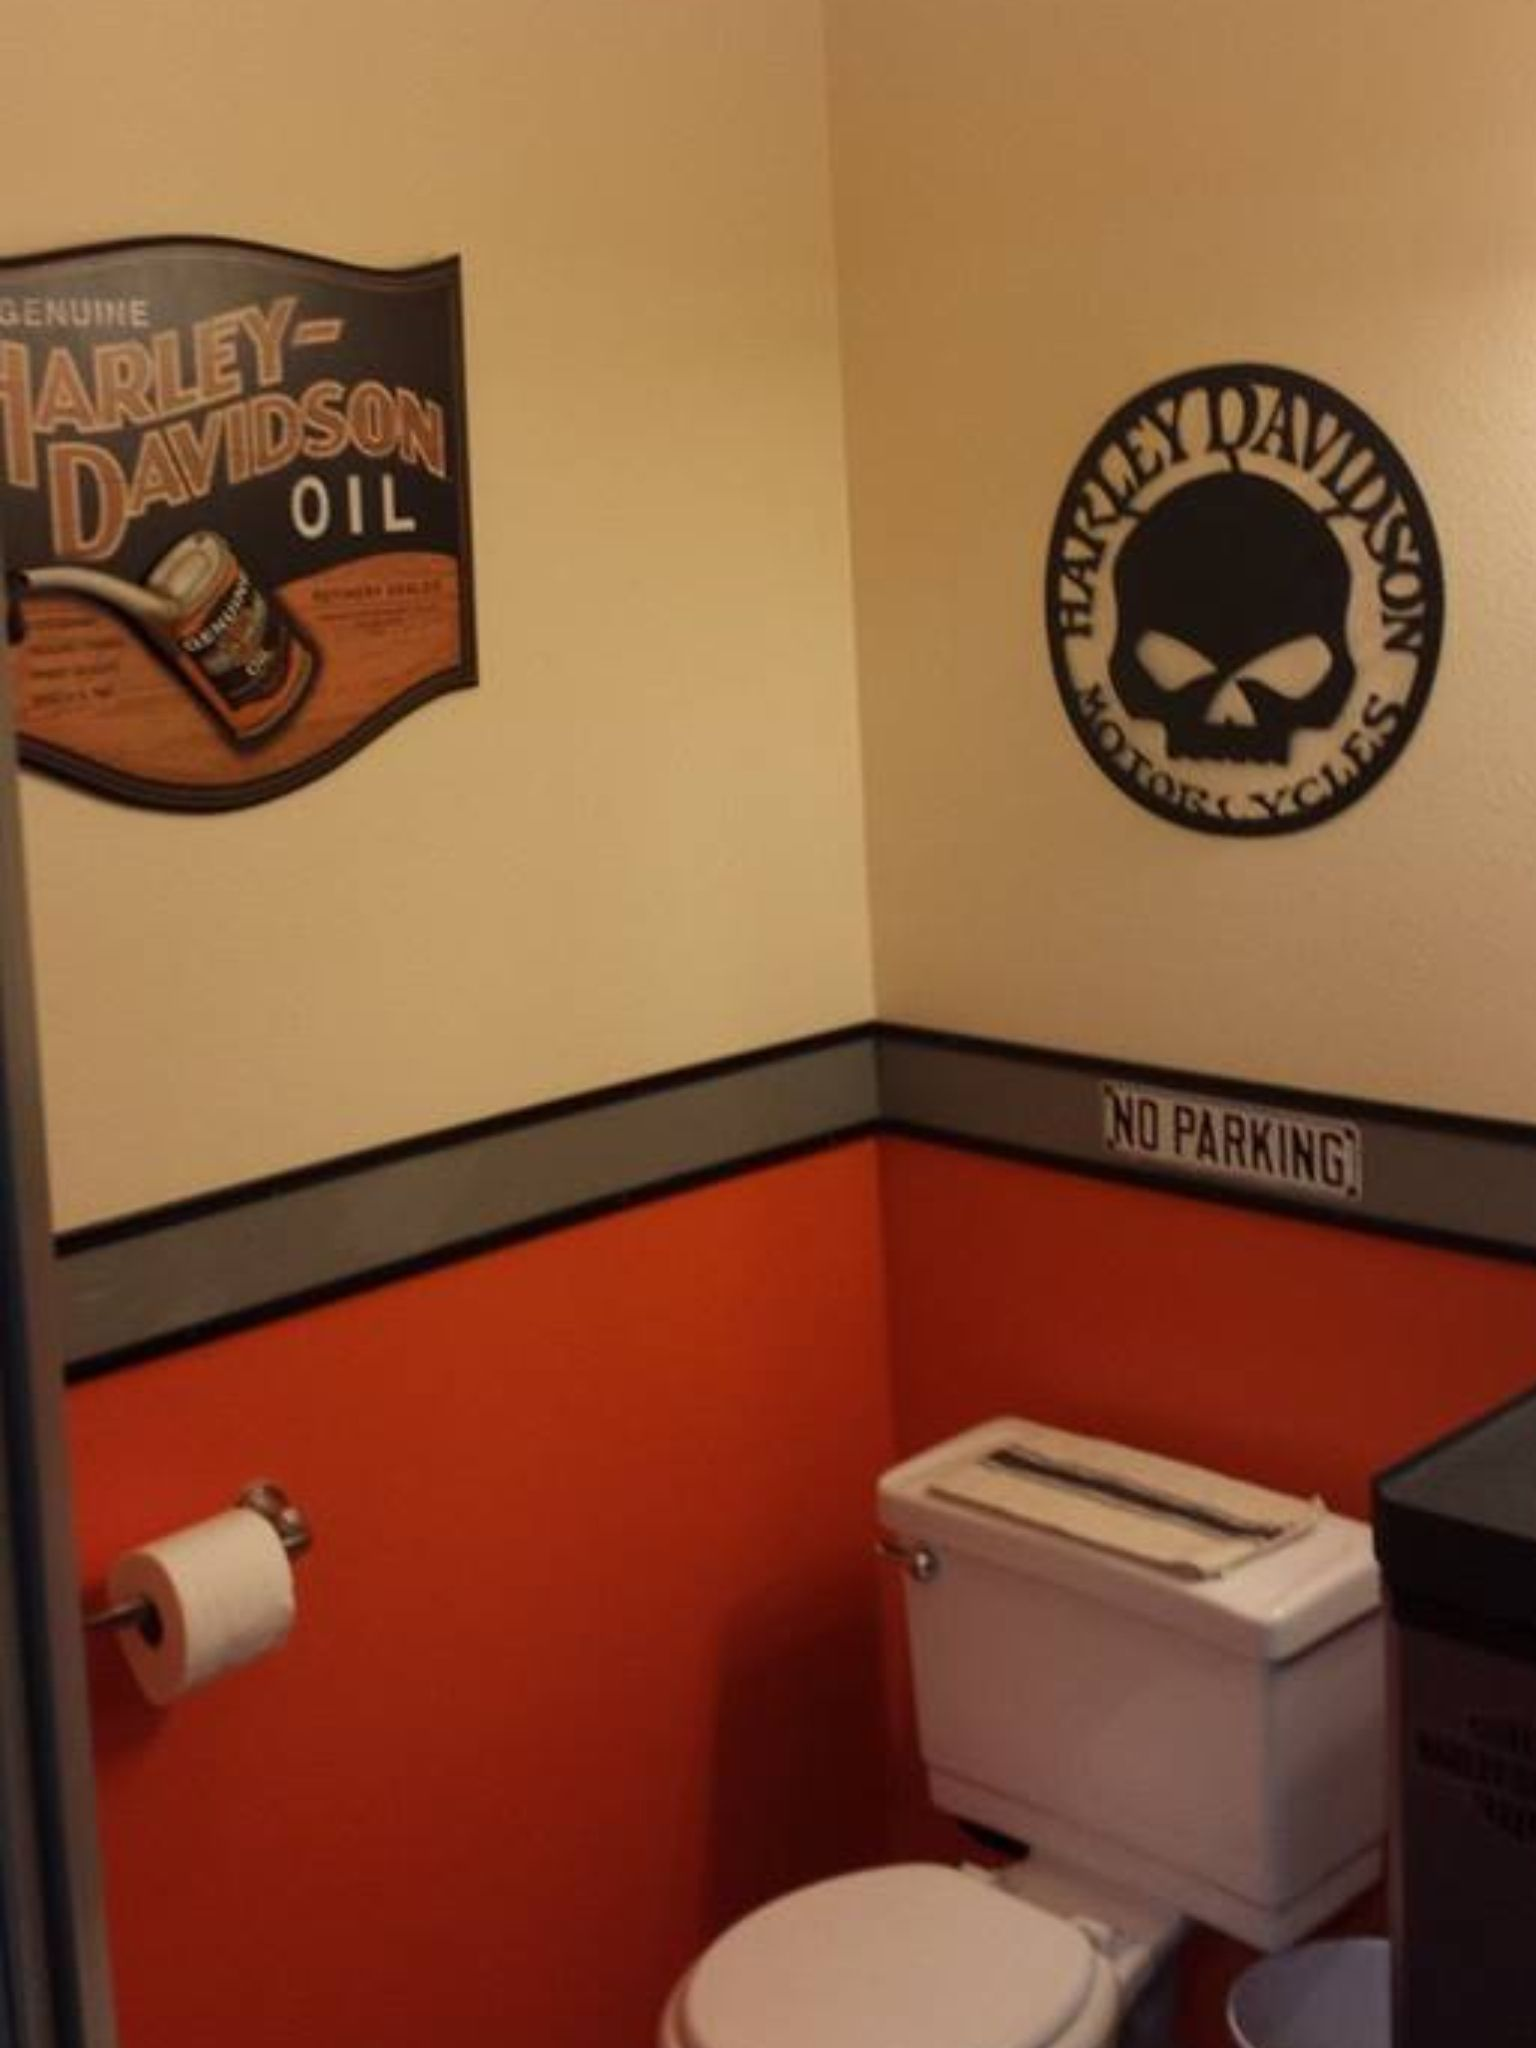 Harley davidson home decorating ideas pictures to pin on for Harley davidson decorations for home